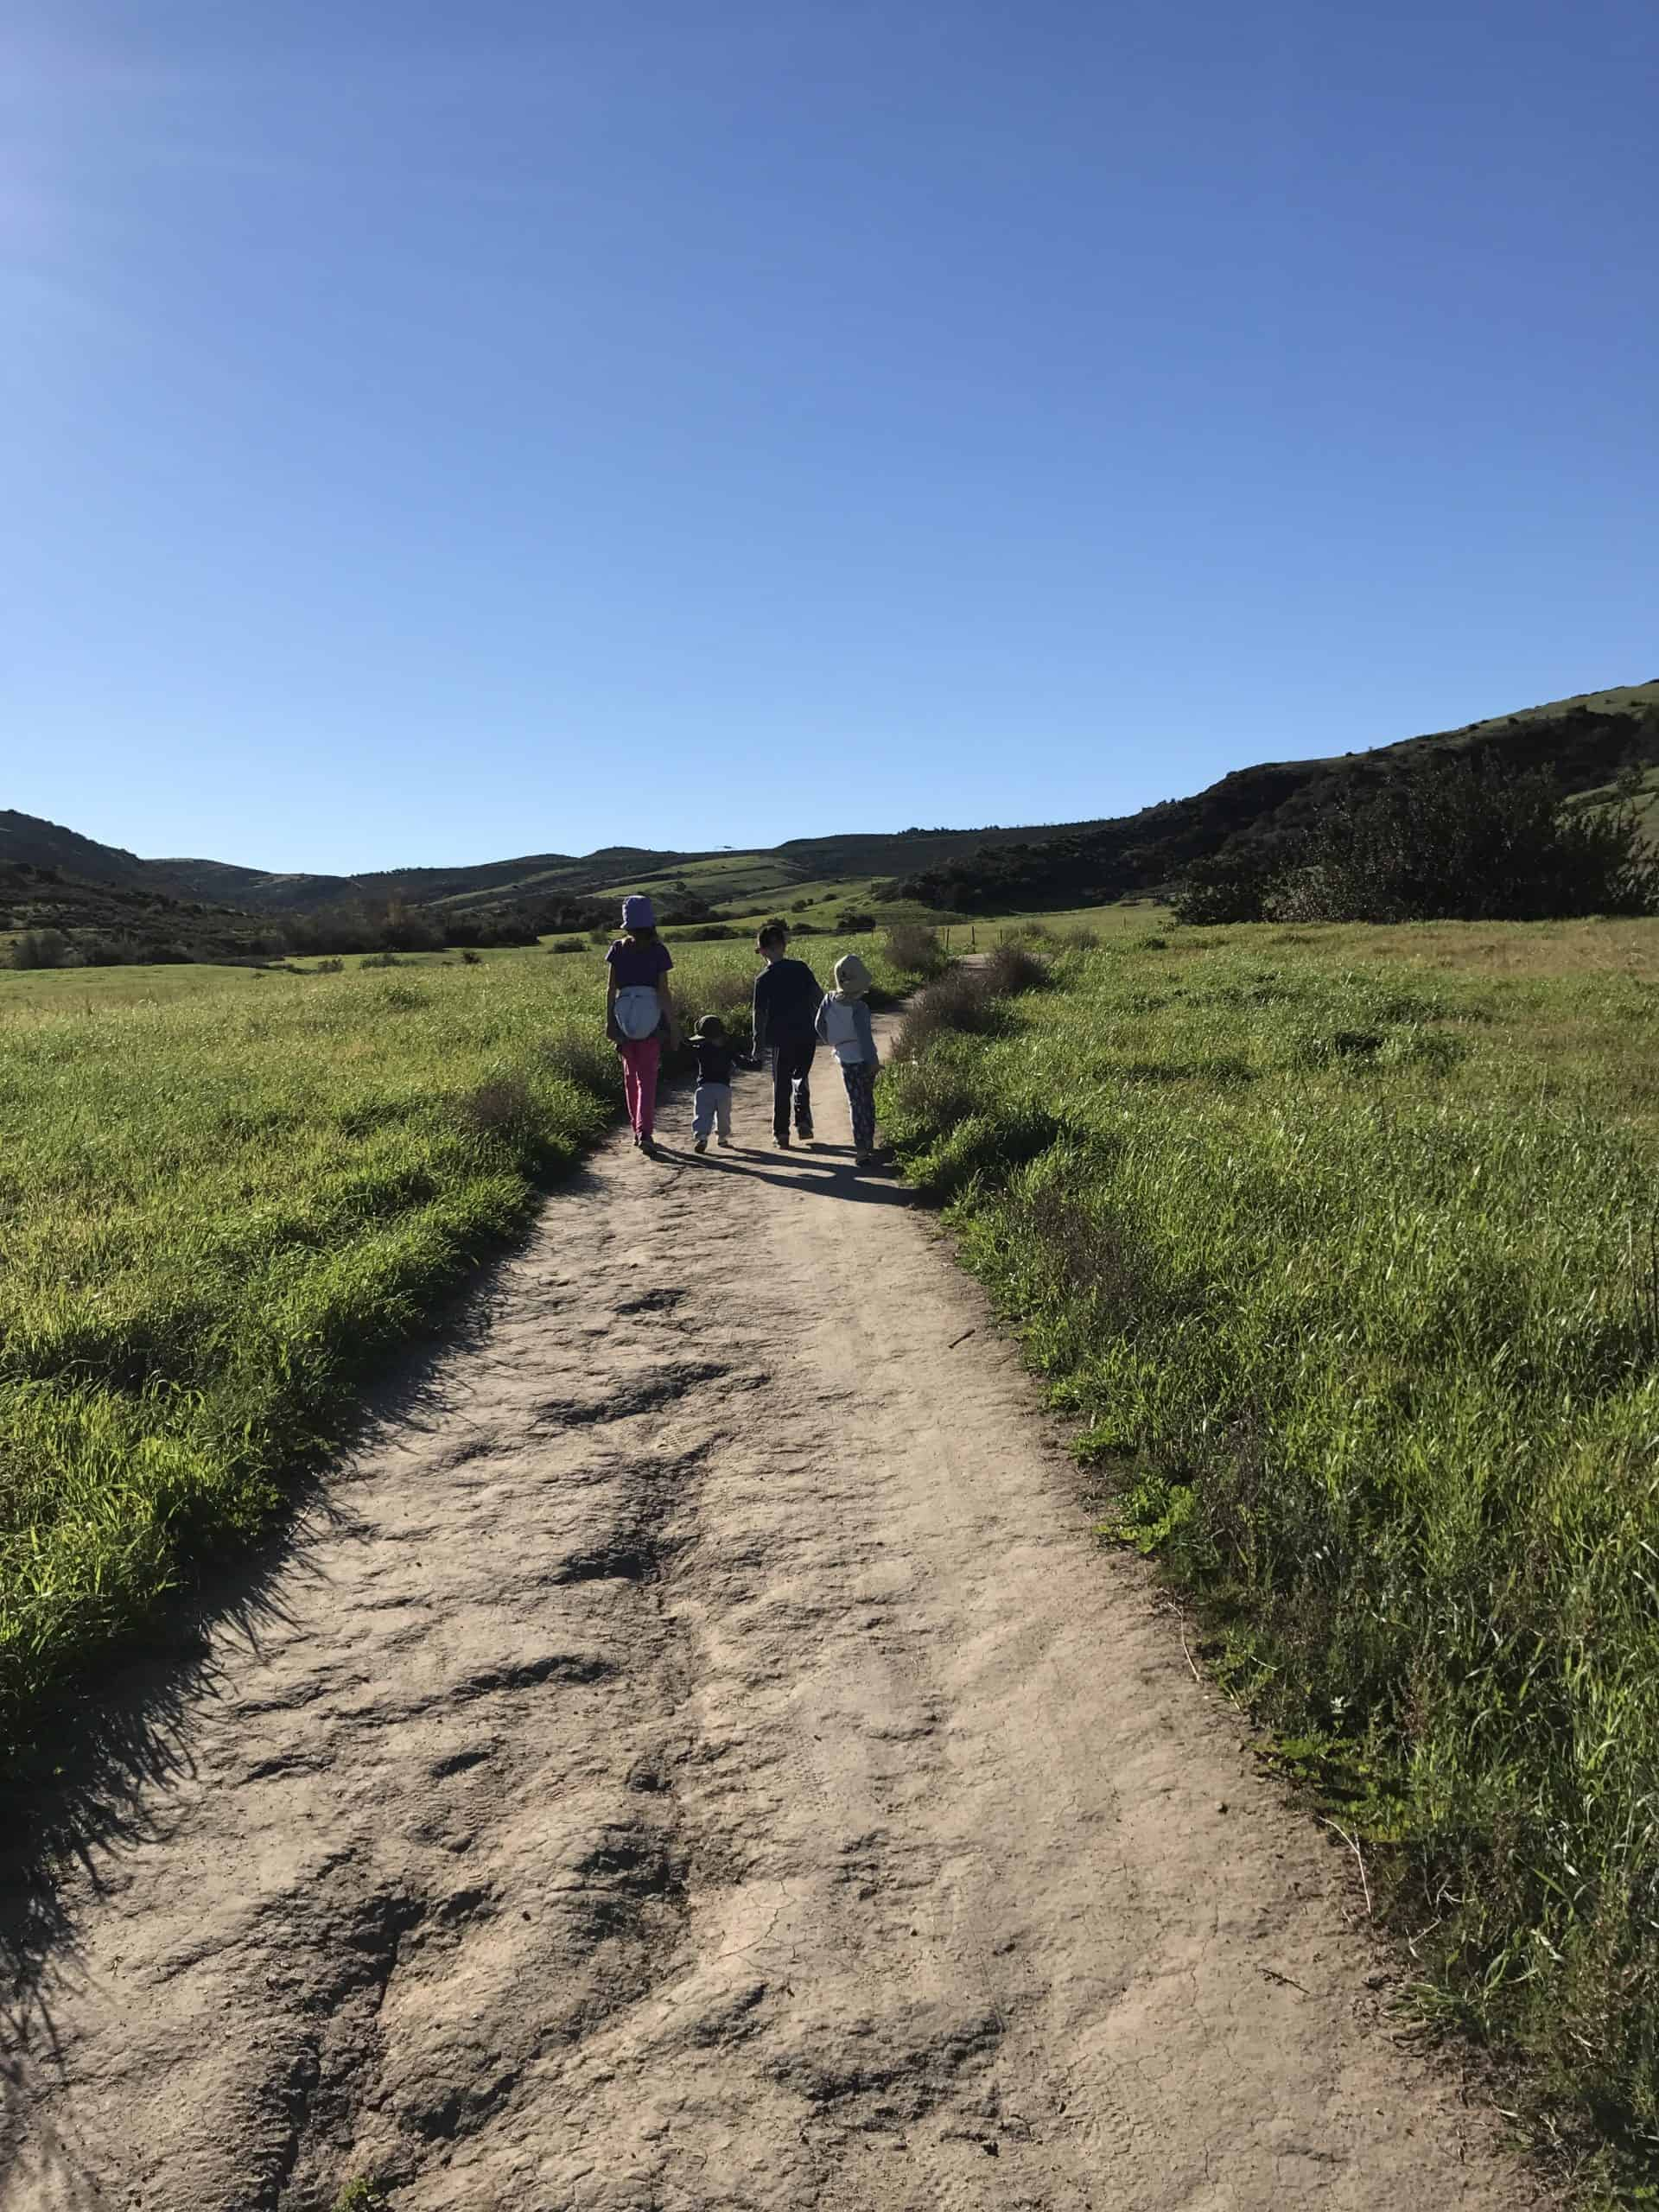 Find trails close to home when hiking with kids.